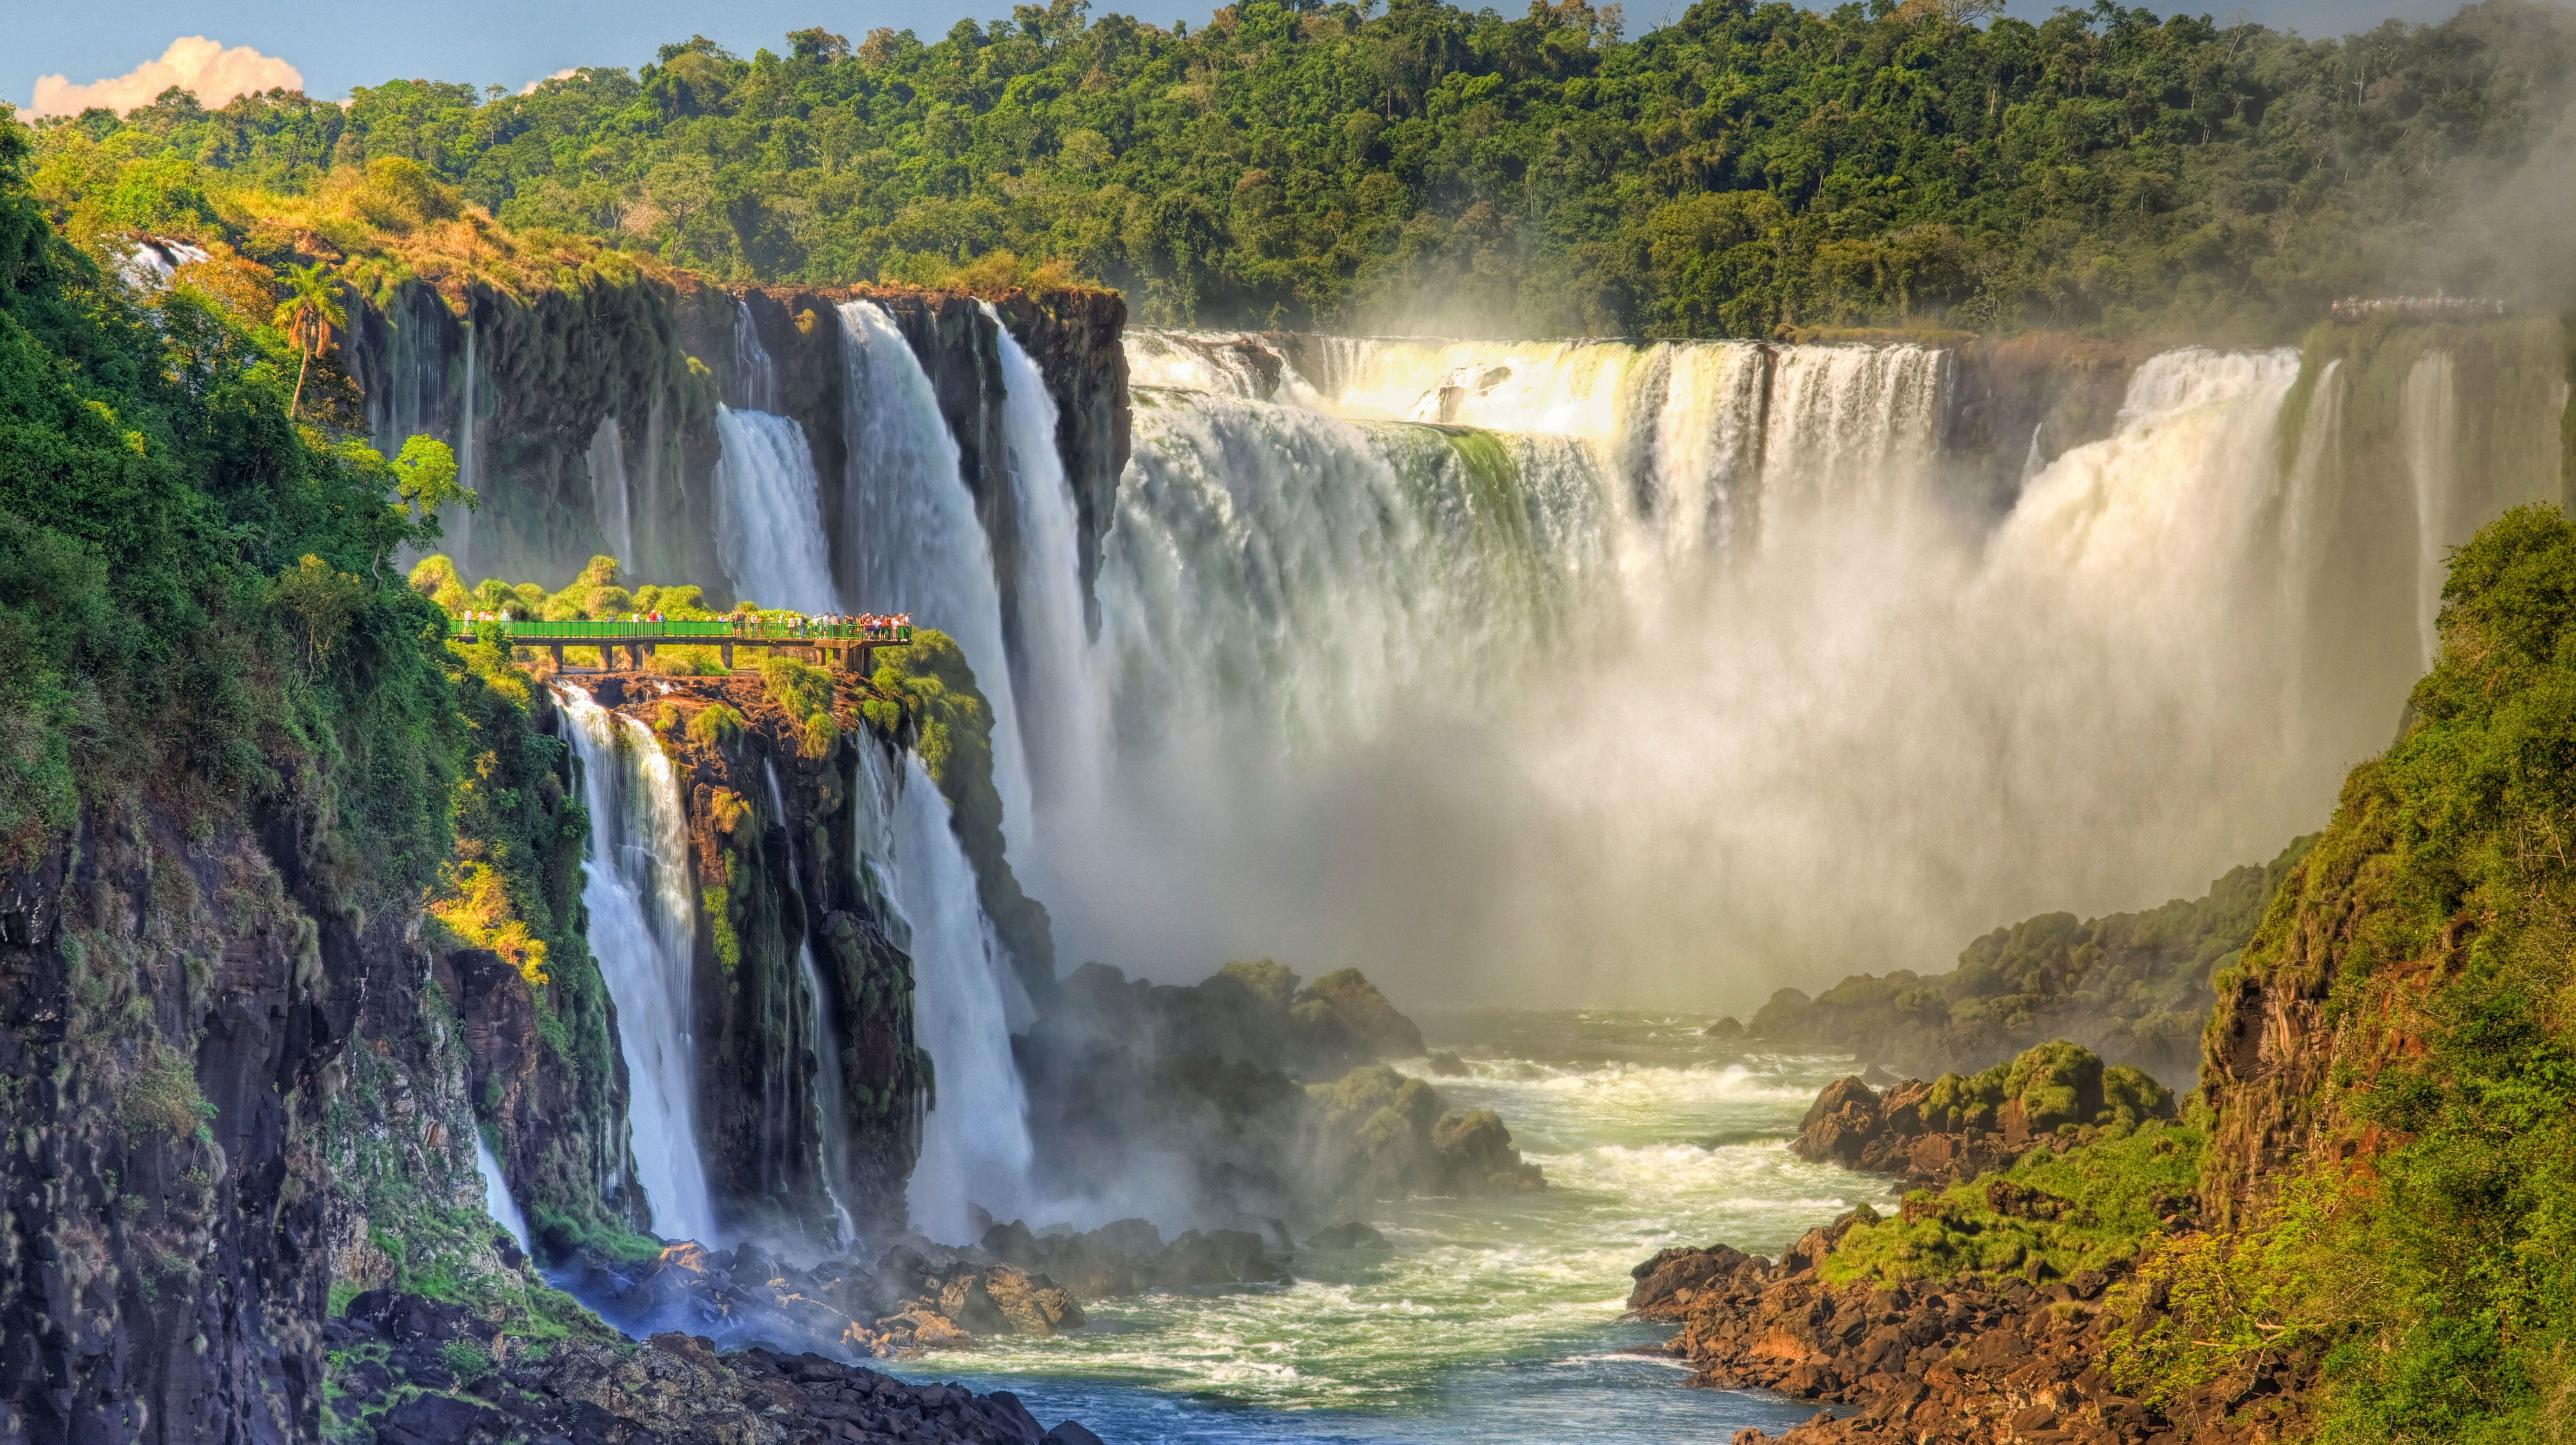 Iguazu Falls at the border of Argentina and Brazil